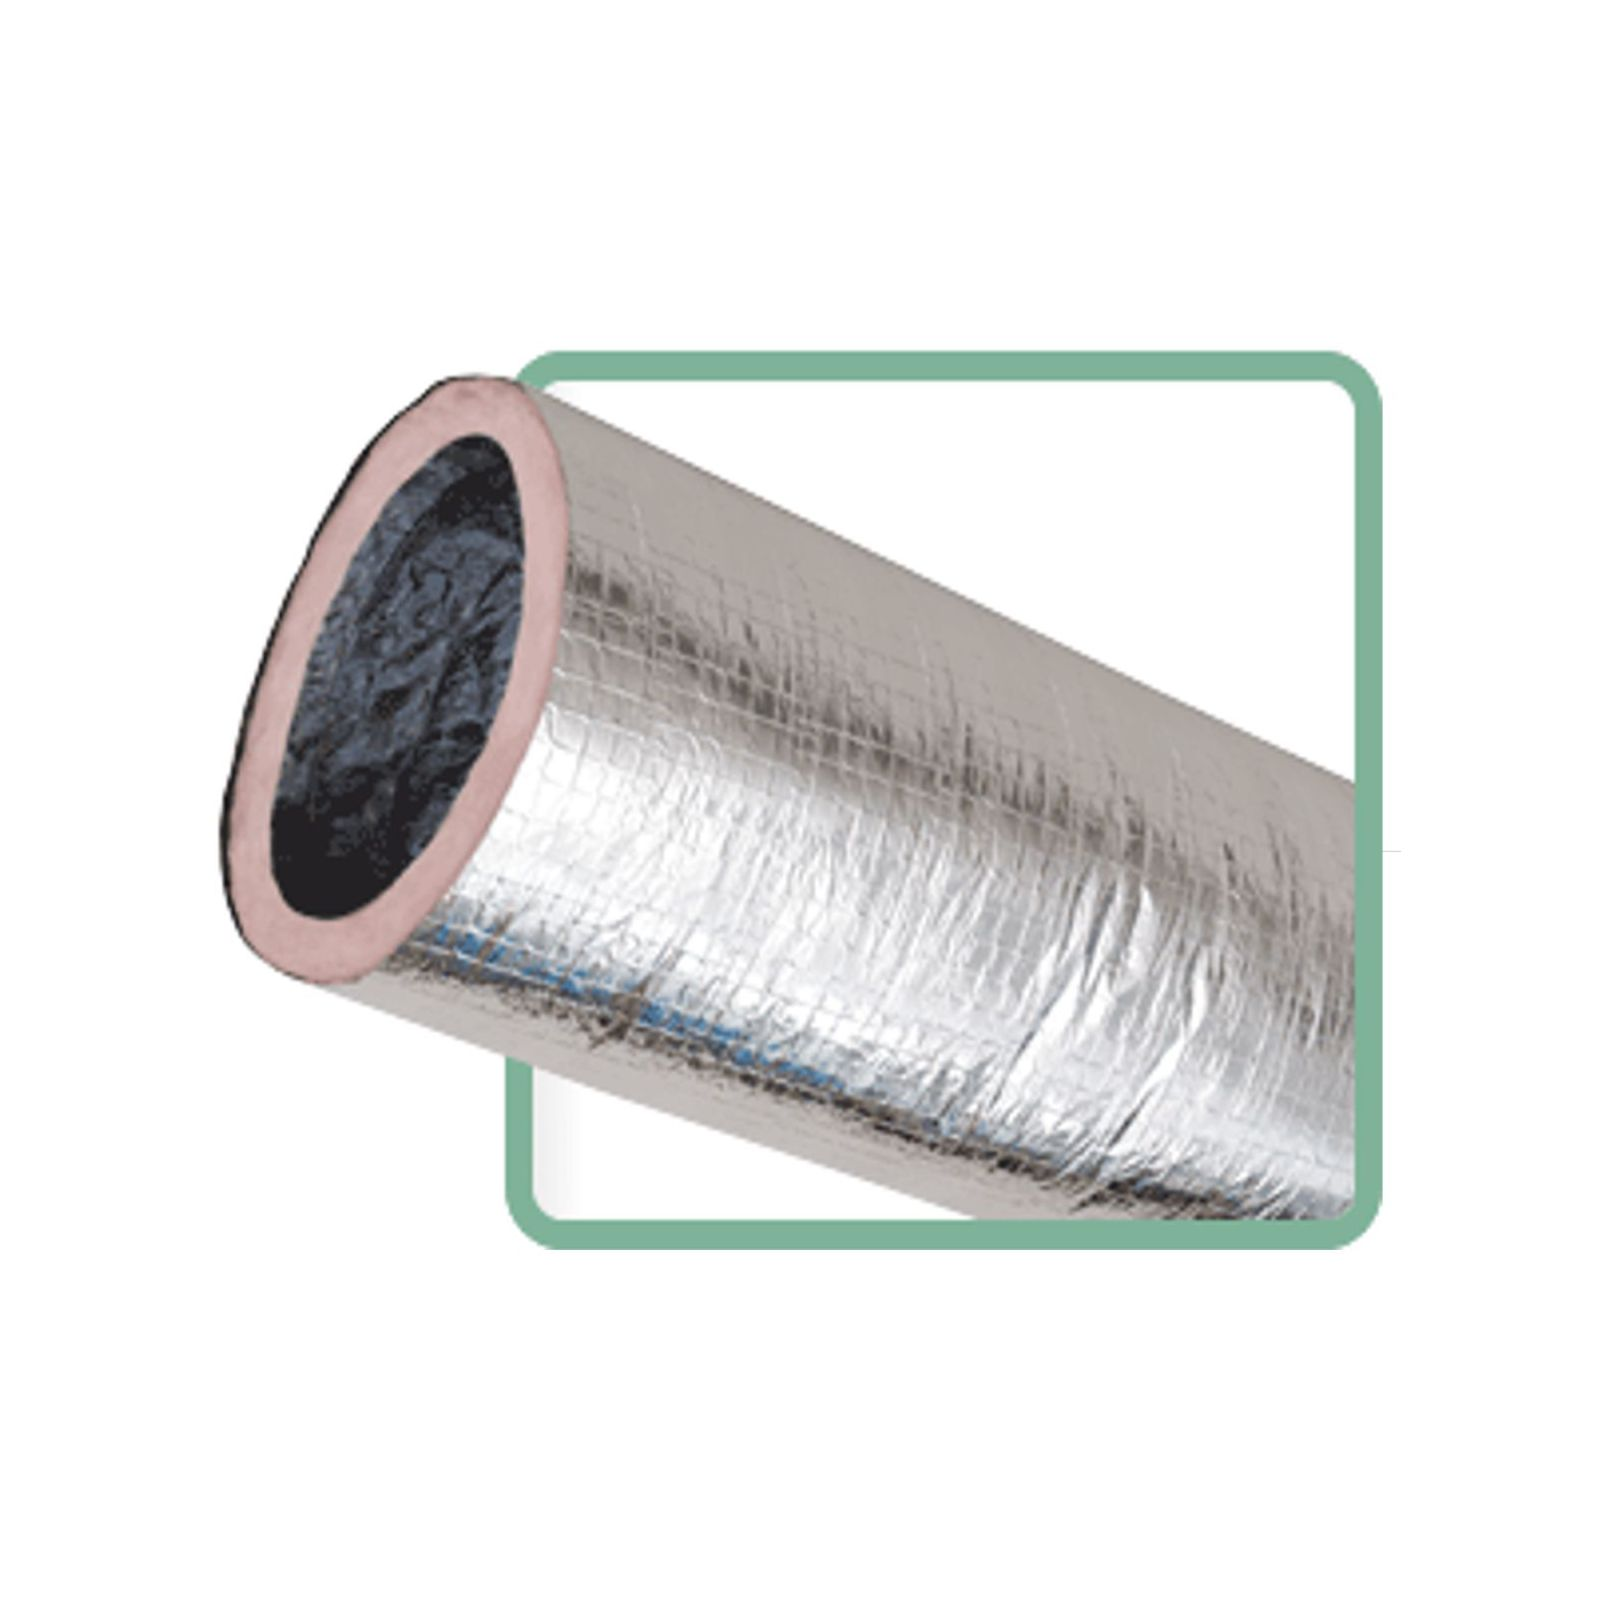 "Thermaflex 056307000004 - KM Silver Flex-Vent Insulated Flexible Air Duct, R8, 7"" X 50' Box"